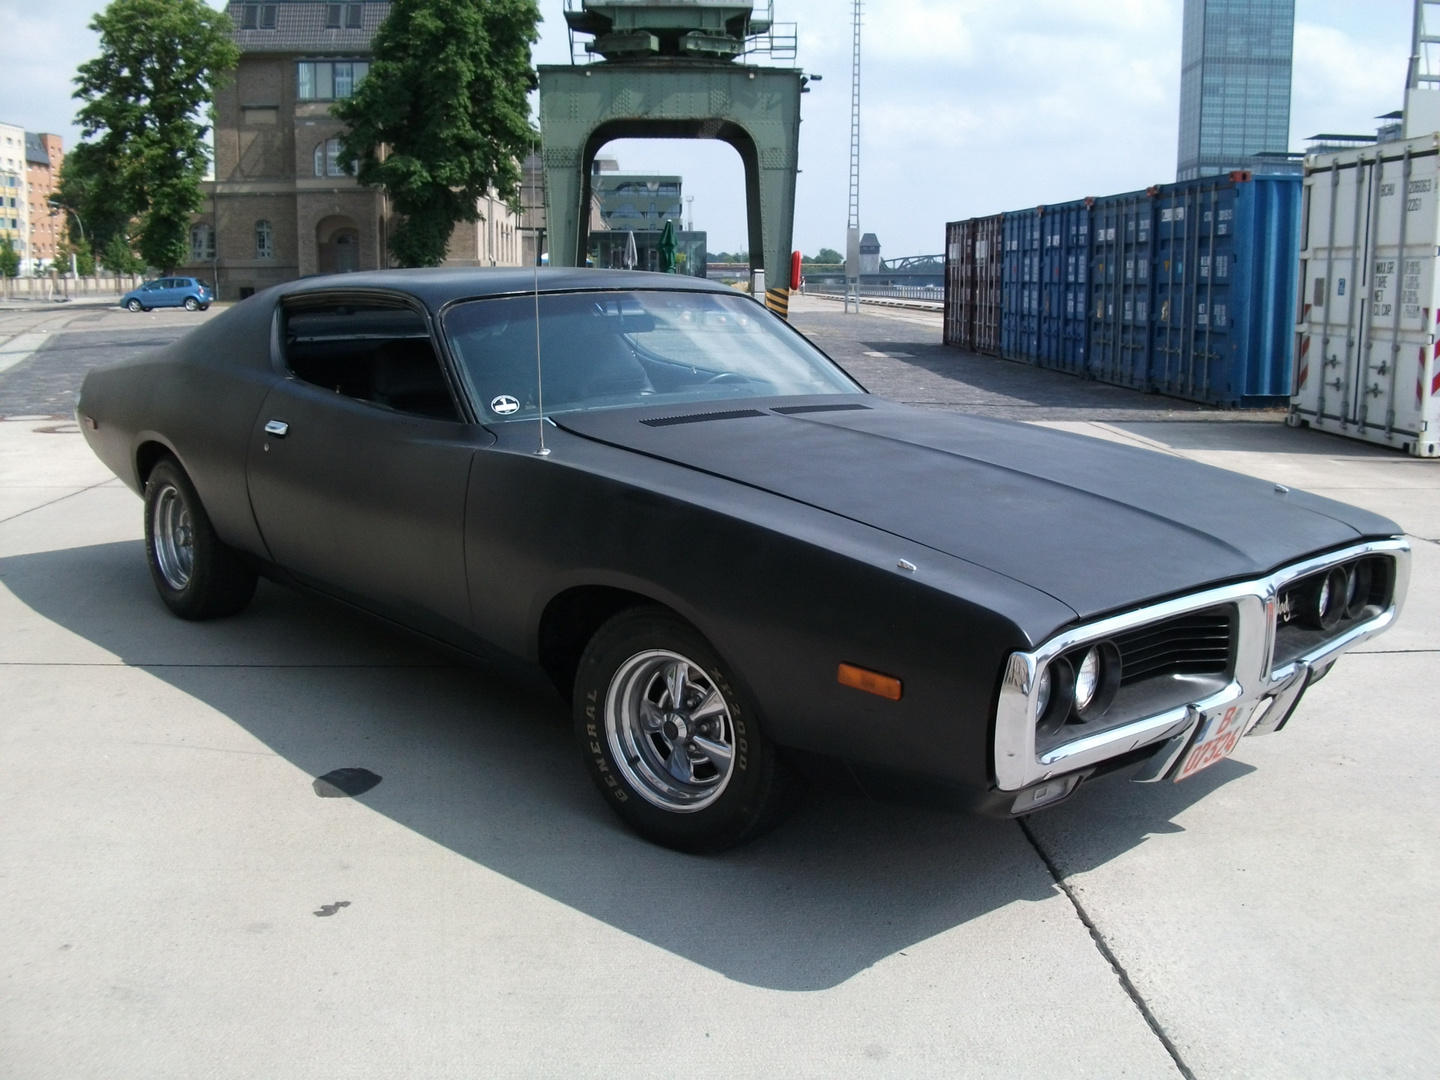 72er dodge charger foto bild autos zweir der oldtimer youngtimer us cars amerikanische. Black Bedroom Furniture Sets. Home Design Ideas